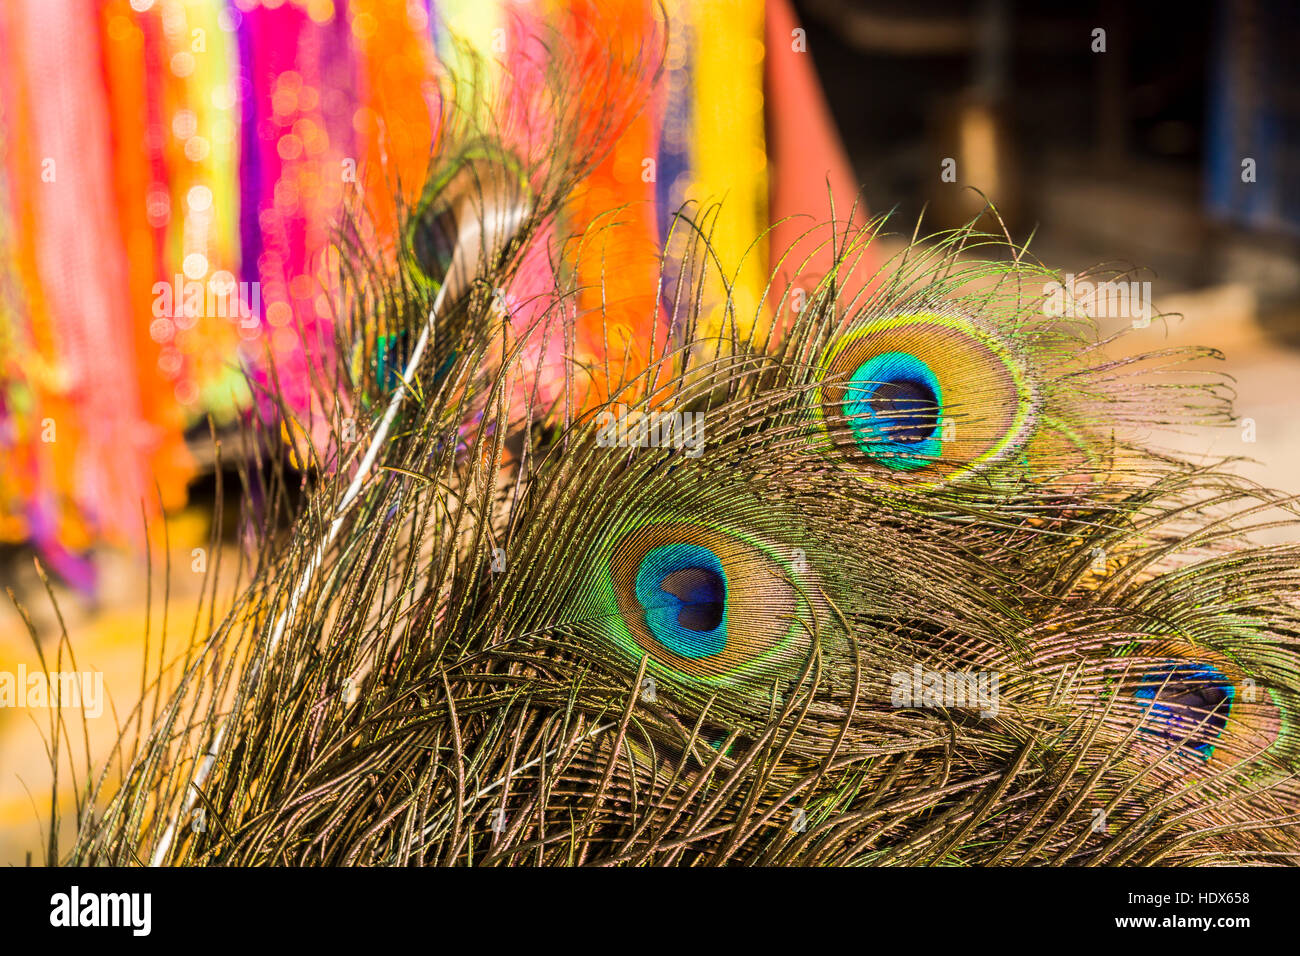 Peacock feathers for religious use are sold at Pashupatinath Temple - Stock Image